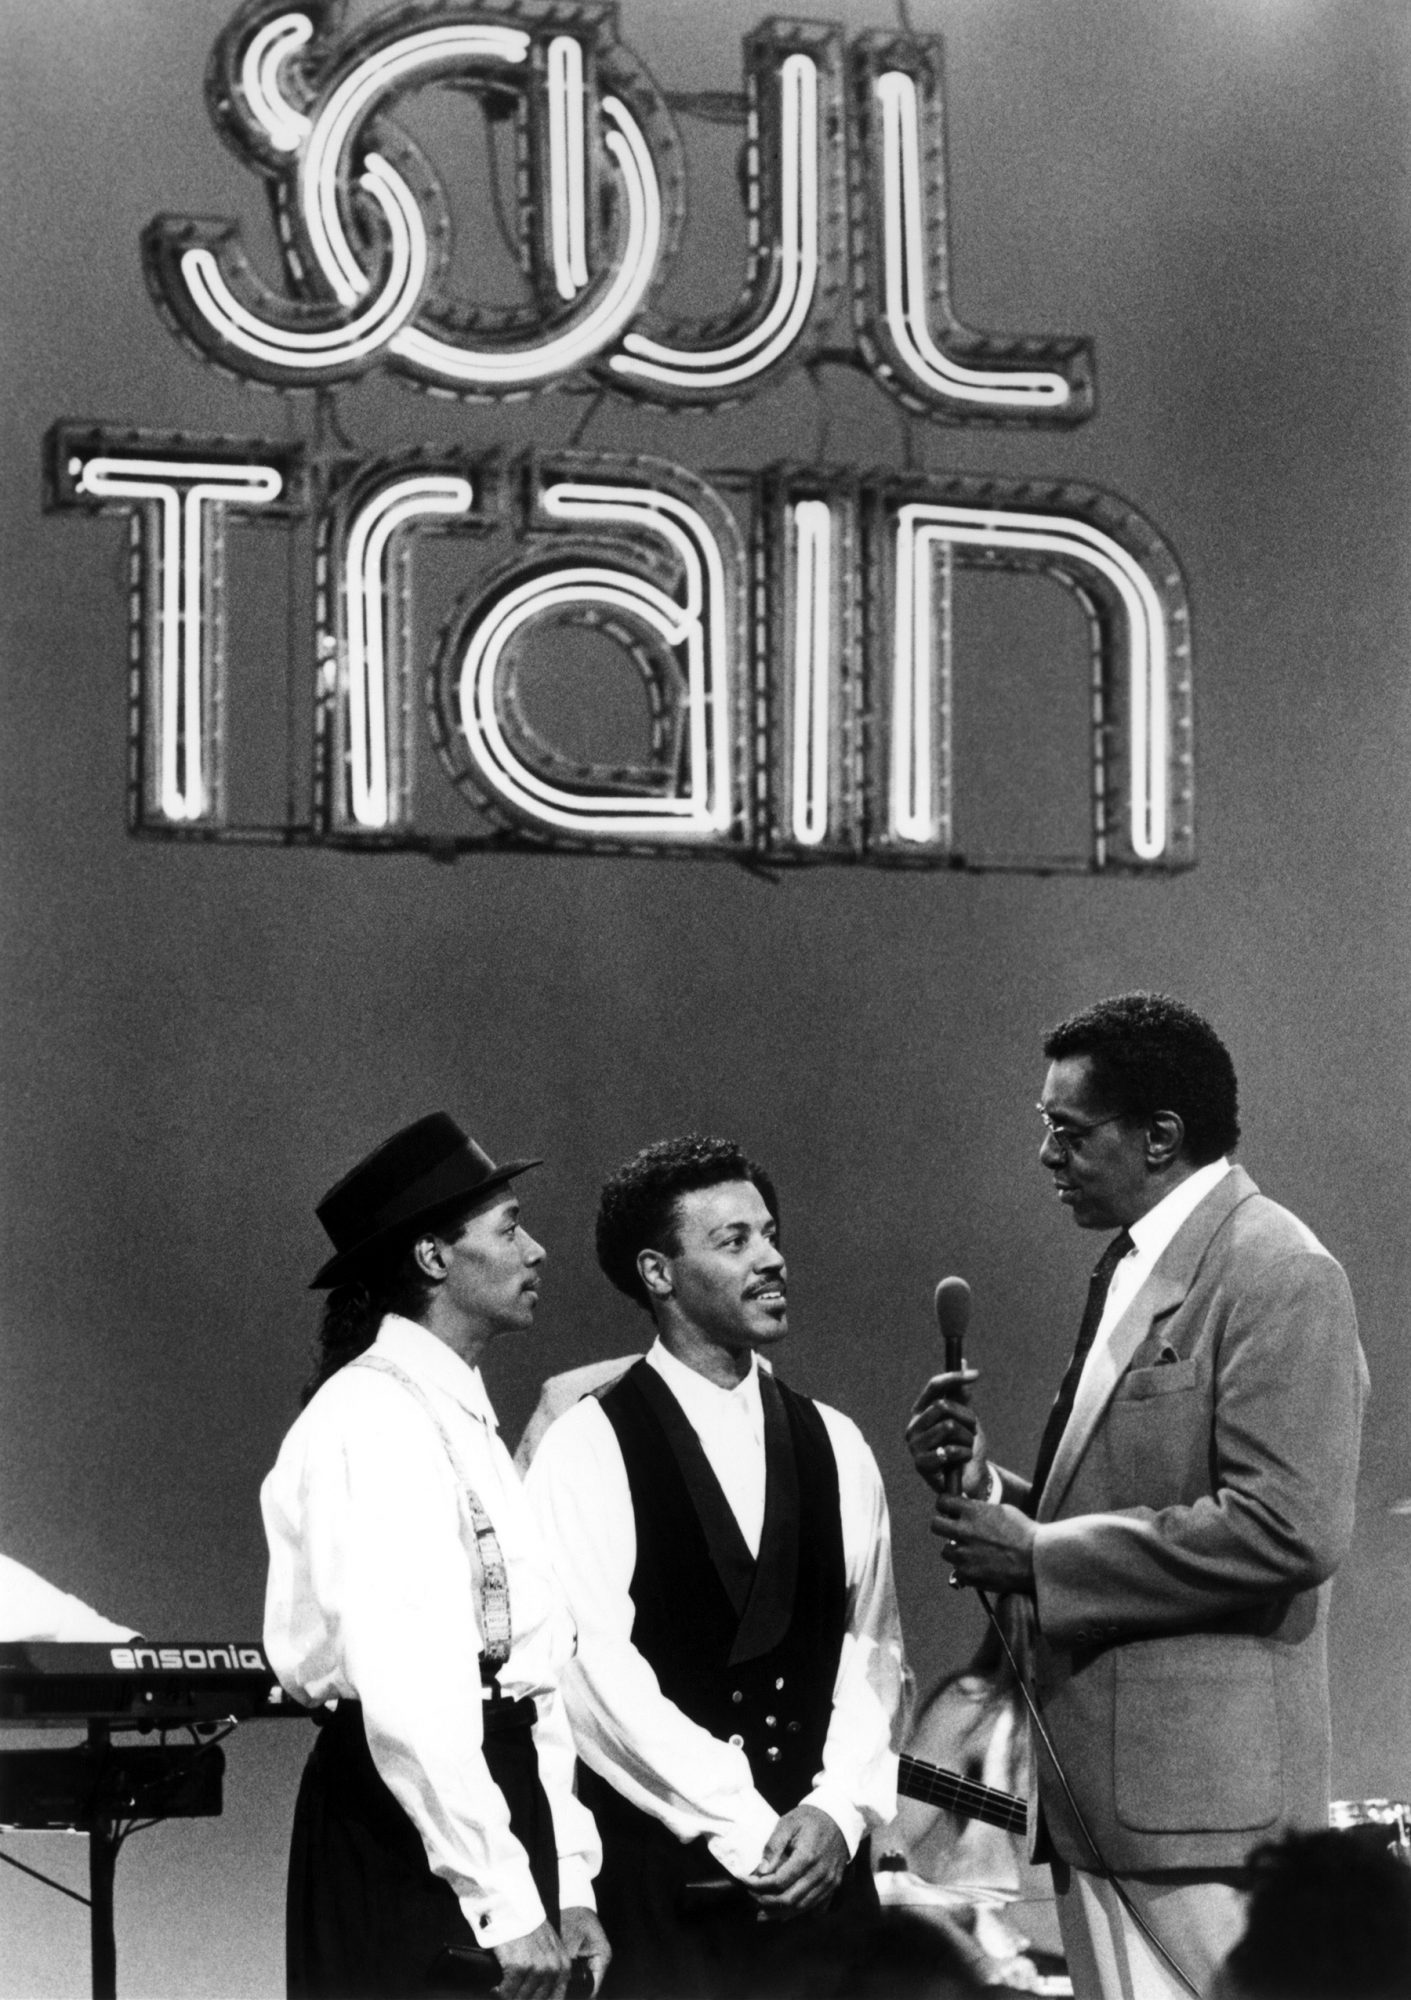 SOUL TRAIN, from left: musical group CALLOWAY:  Cino-vincent Calloway, Reggie Calloway, Don Corneliu